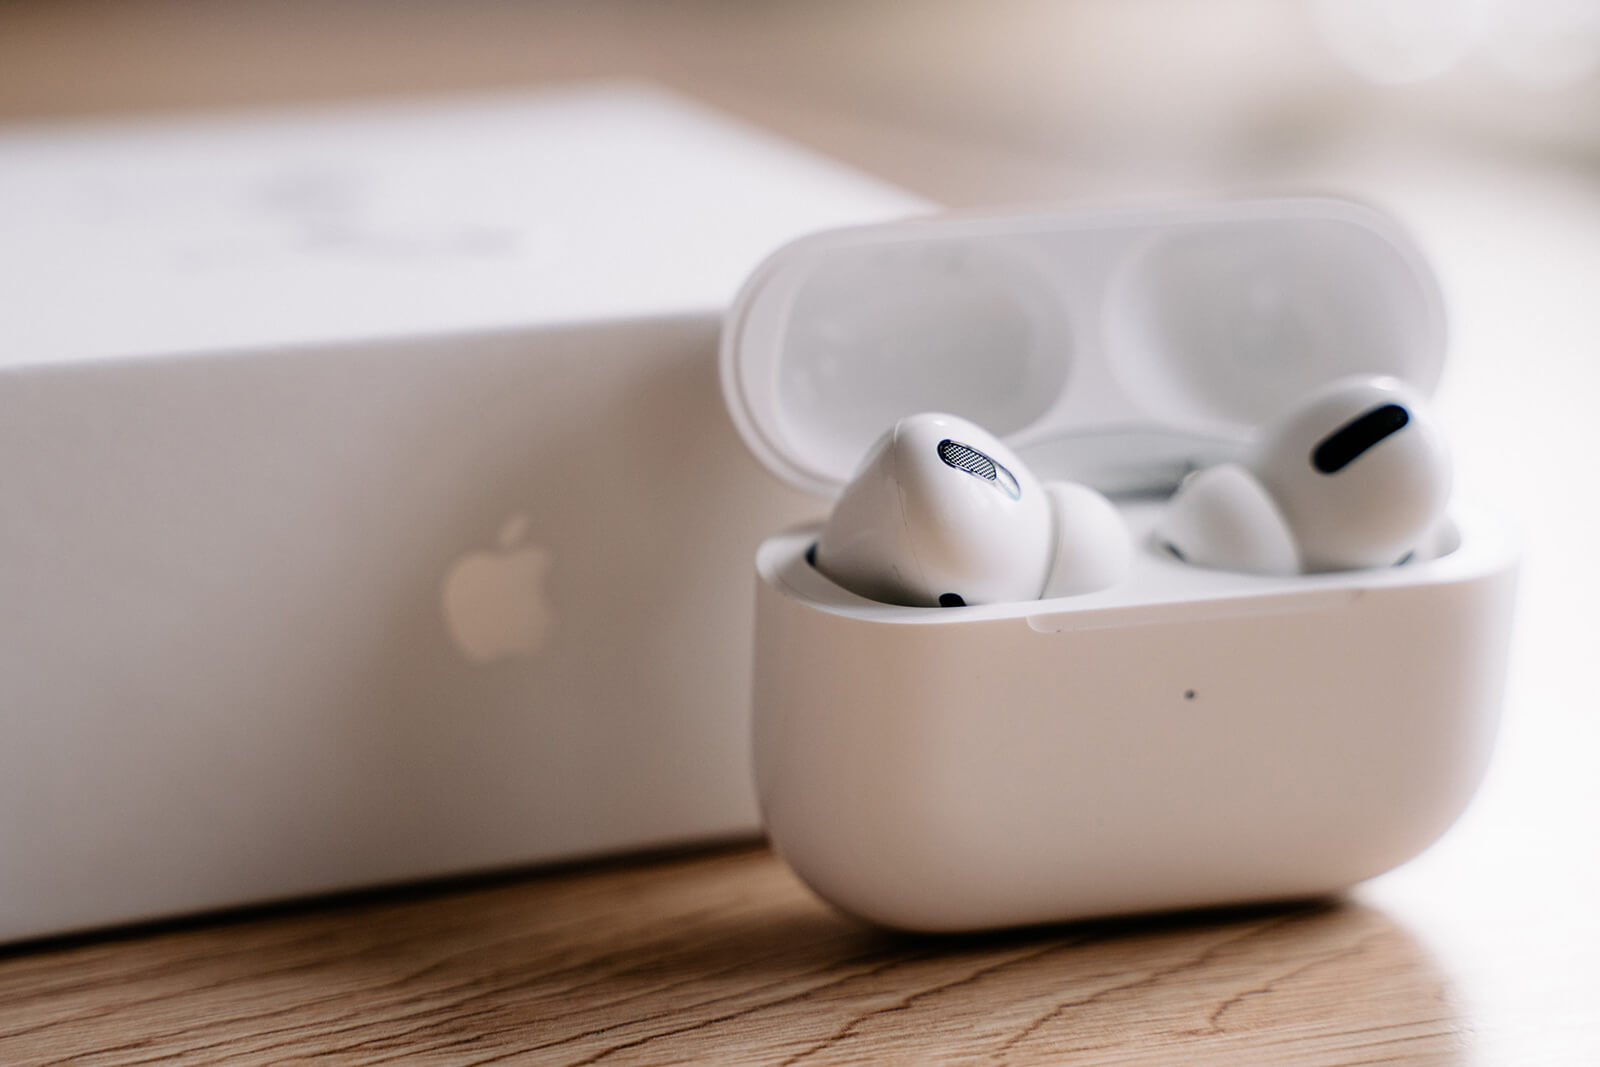 Airpods Connected But no Sound - Airpods Pro